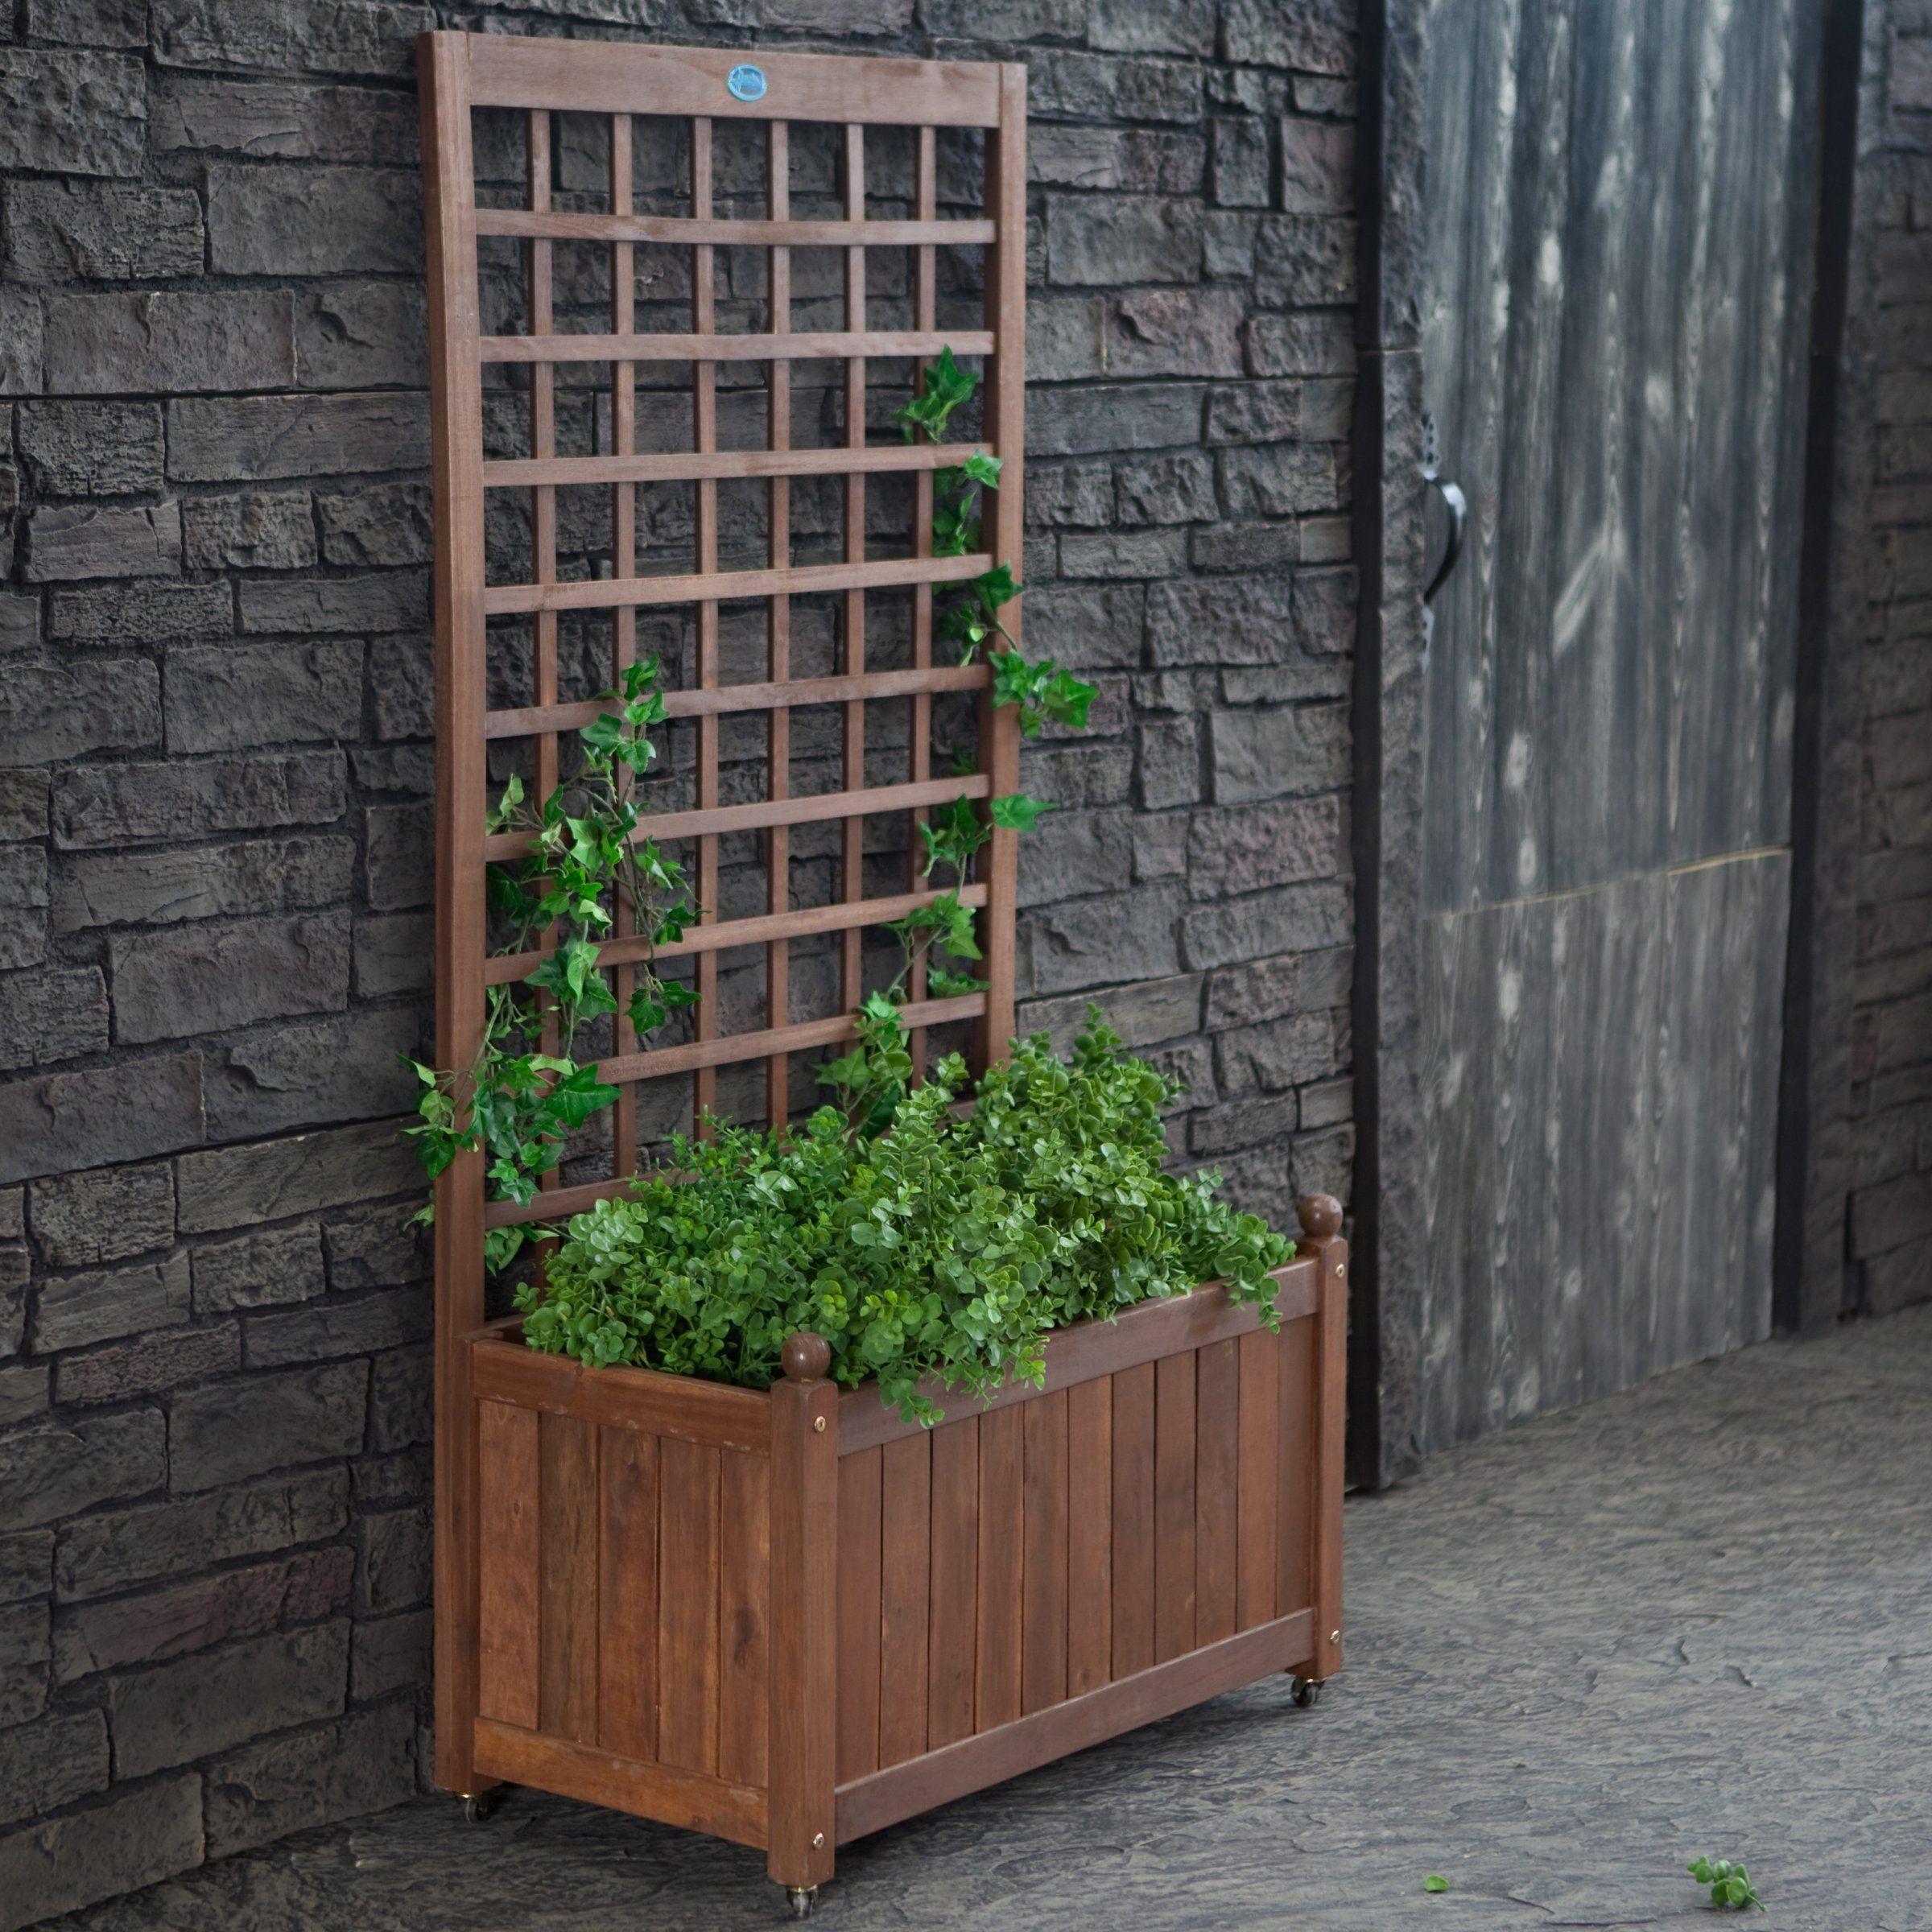 Jordan Manufacturing Wood Planter Box With Trellis Privacy Screens At Hayneedle Wood Planters Planter Box With Trellis Planter Trellis